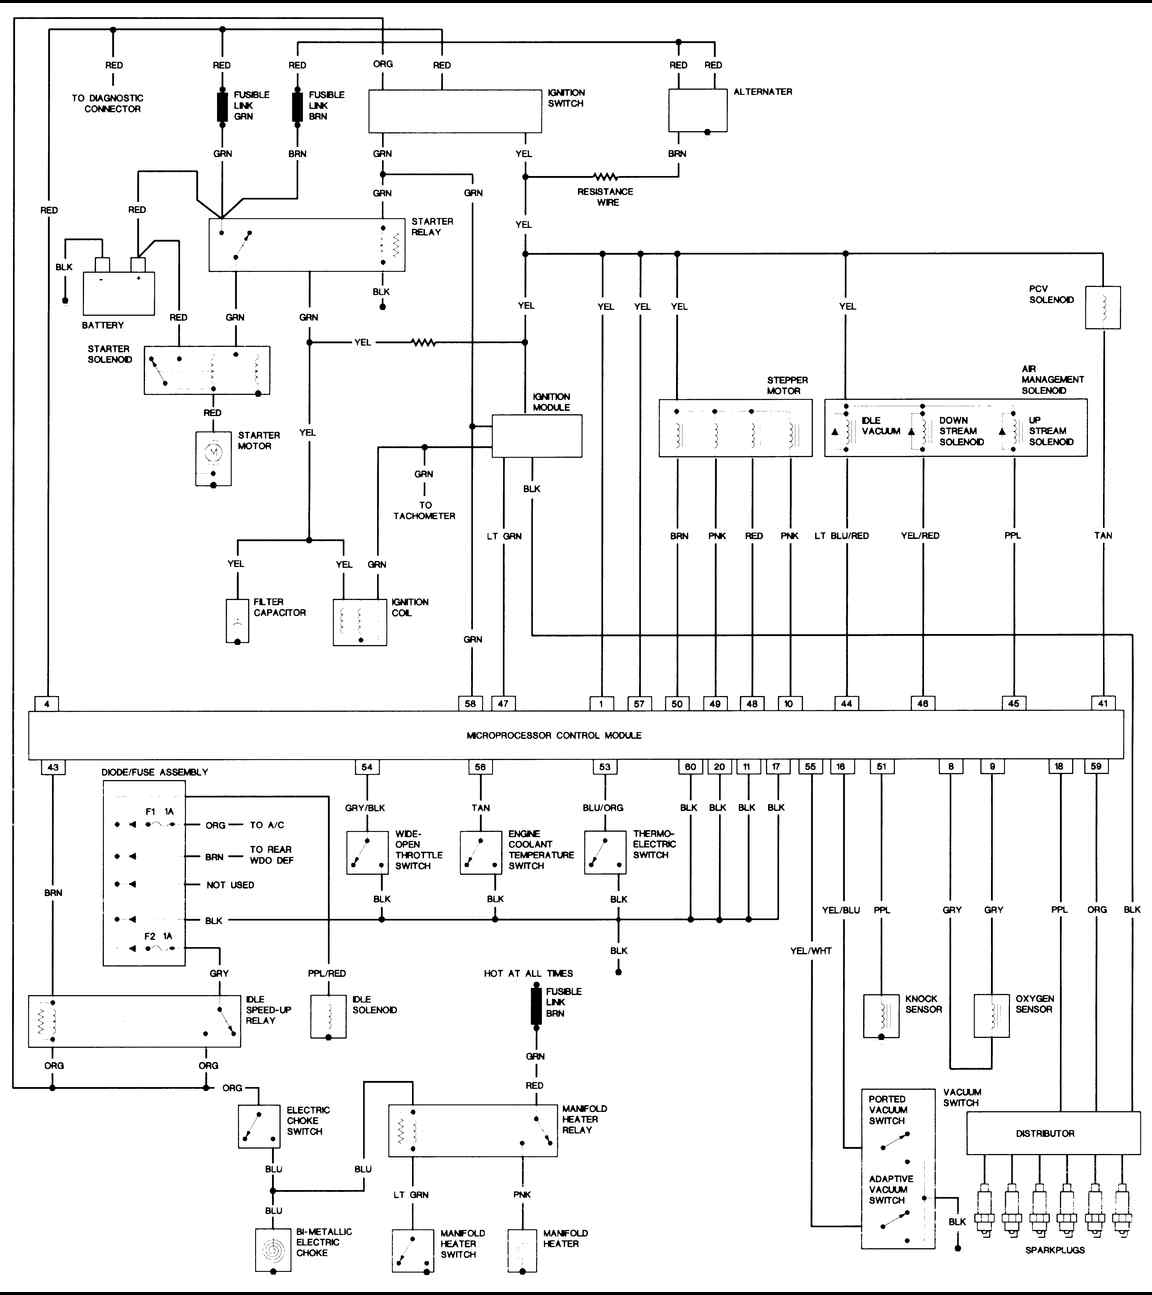 Jeep wrangler wiring diagram jeep free wiring diagrams wiring diagram